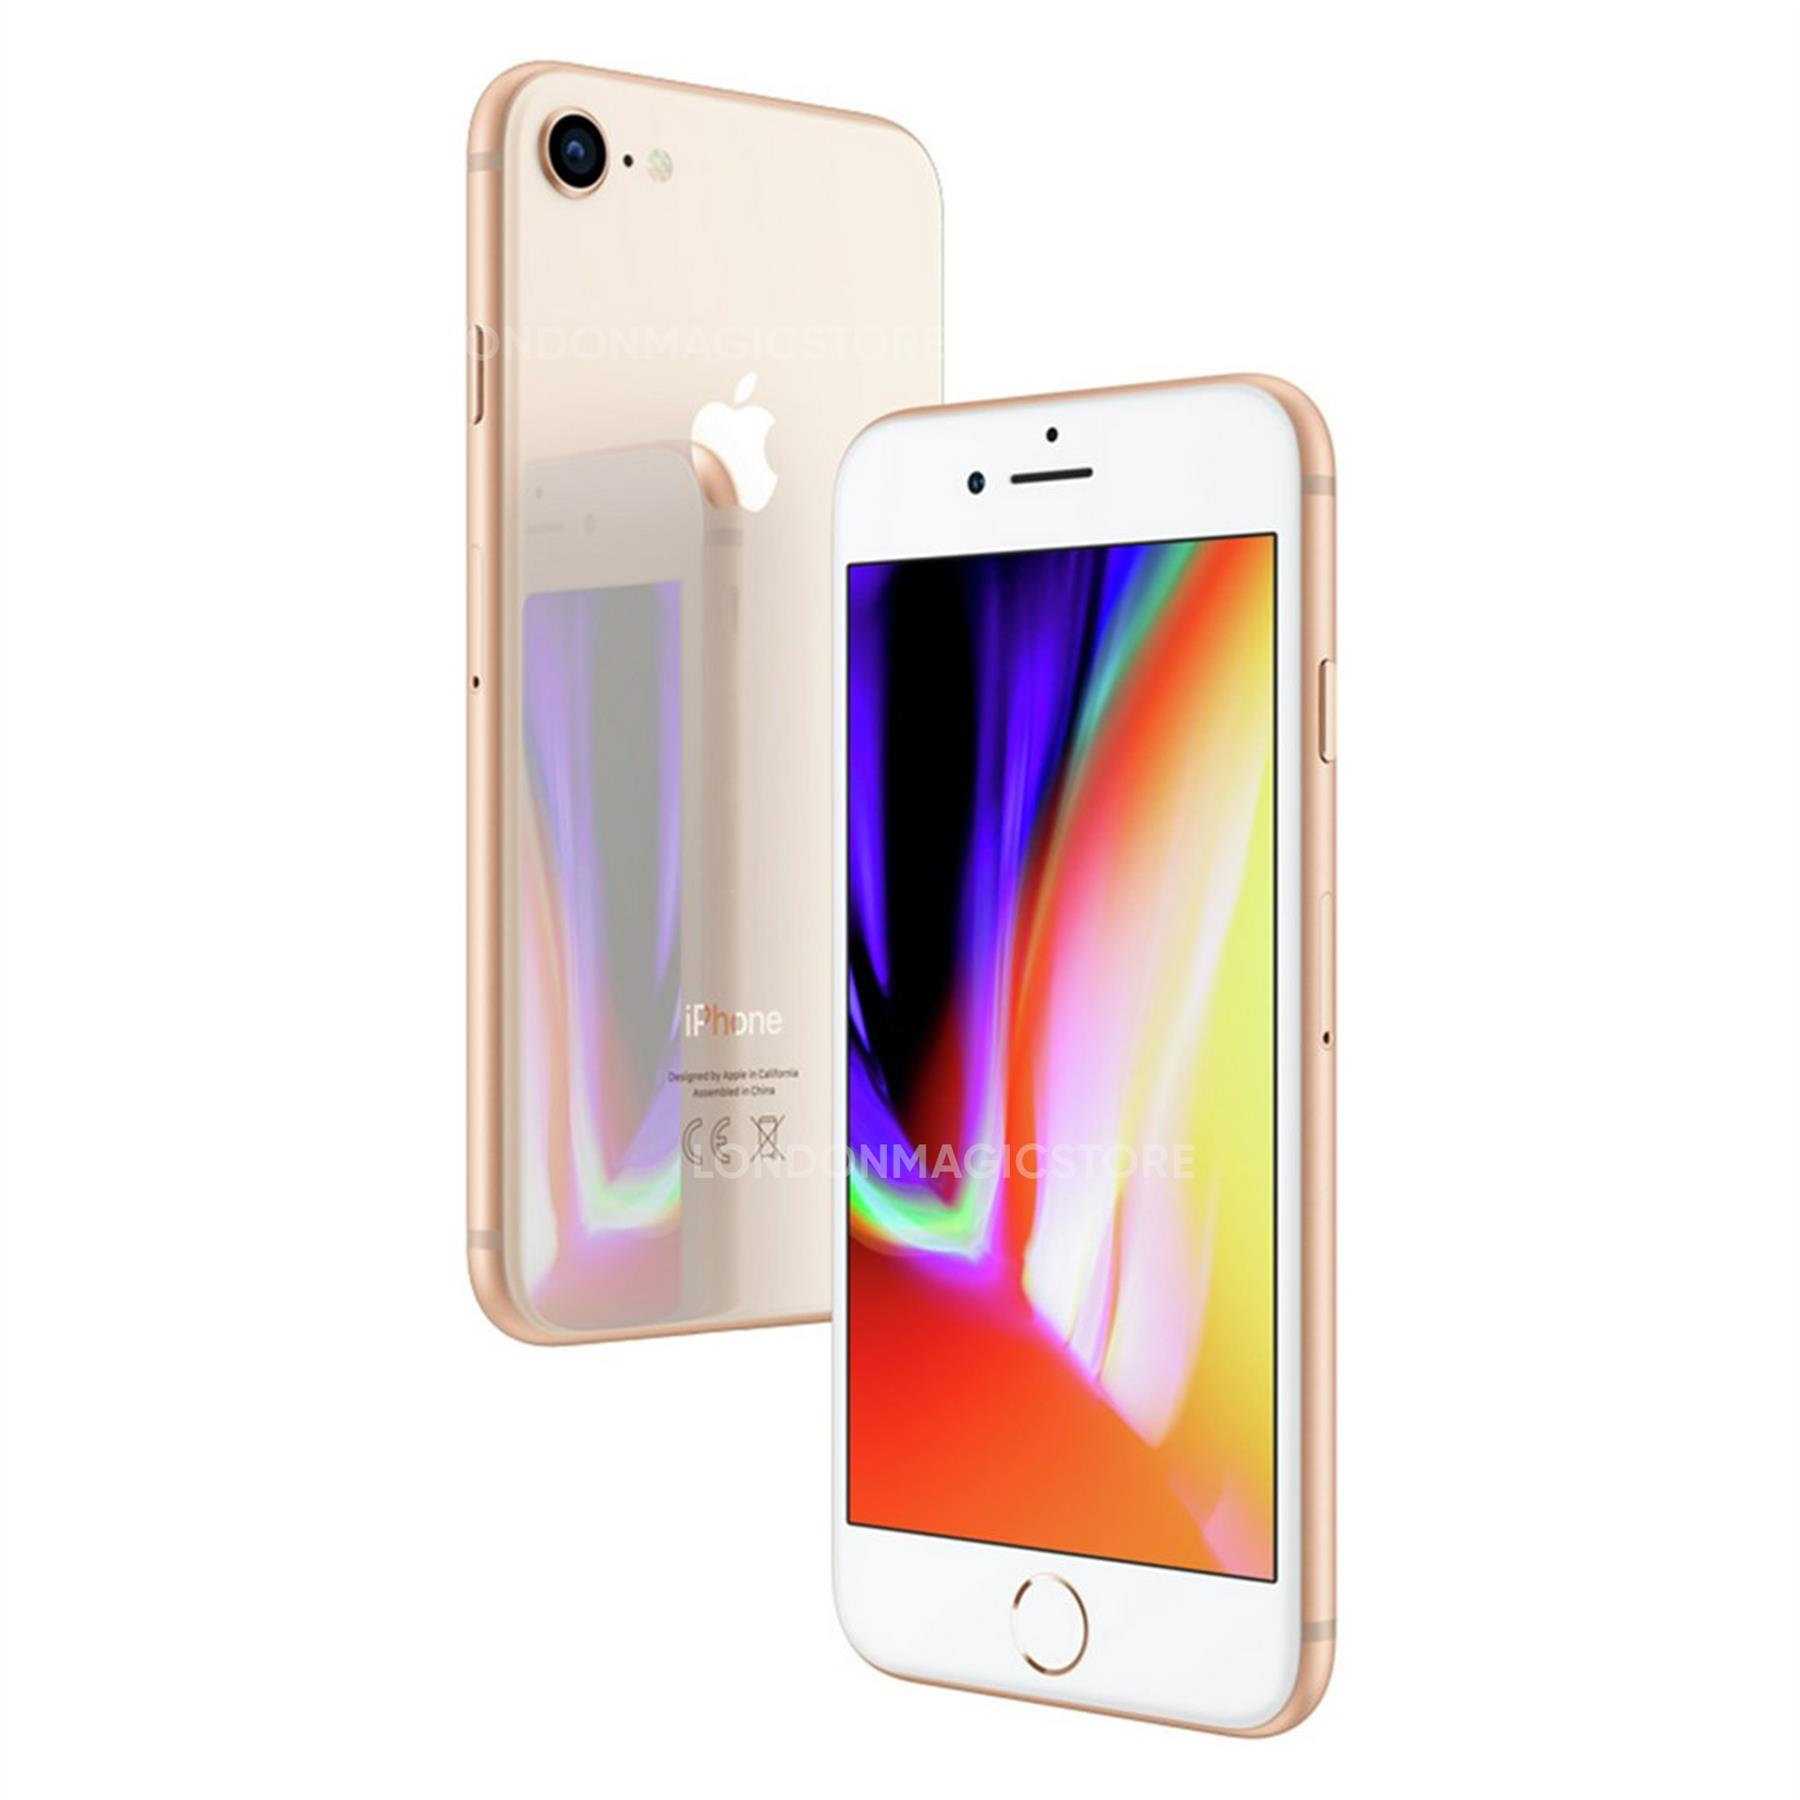 thumbnail 4 - Brand New Apple iPhone 8 64GB 256GB Unlocked - All Colours - With Original Box